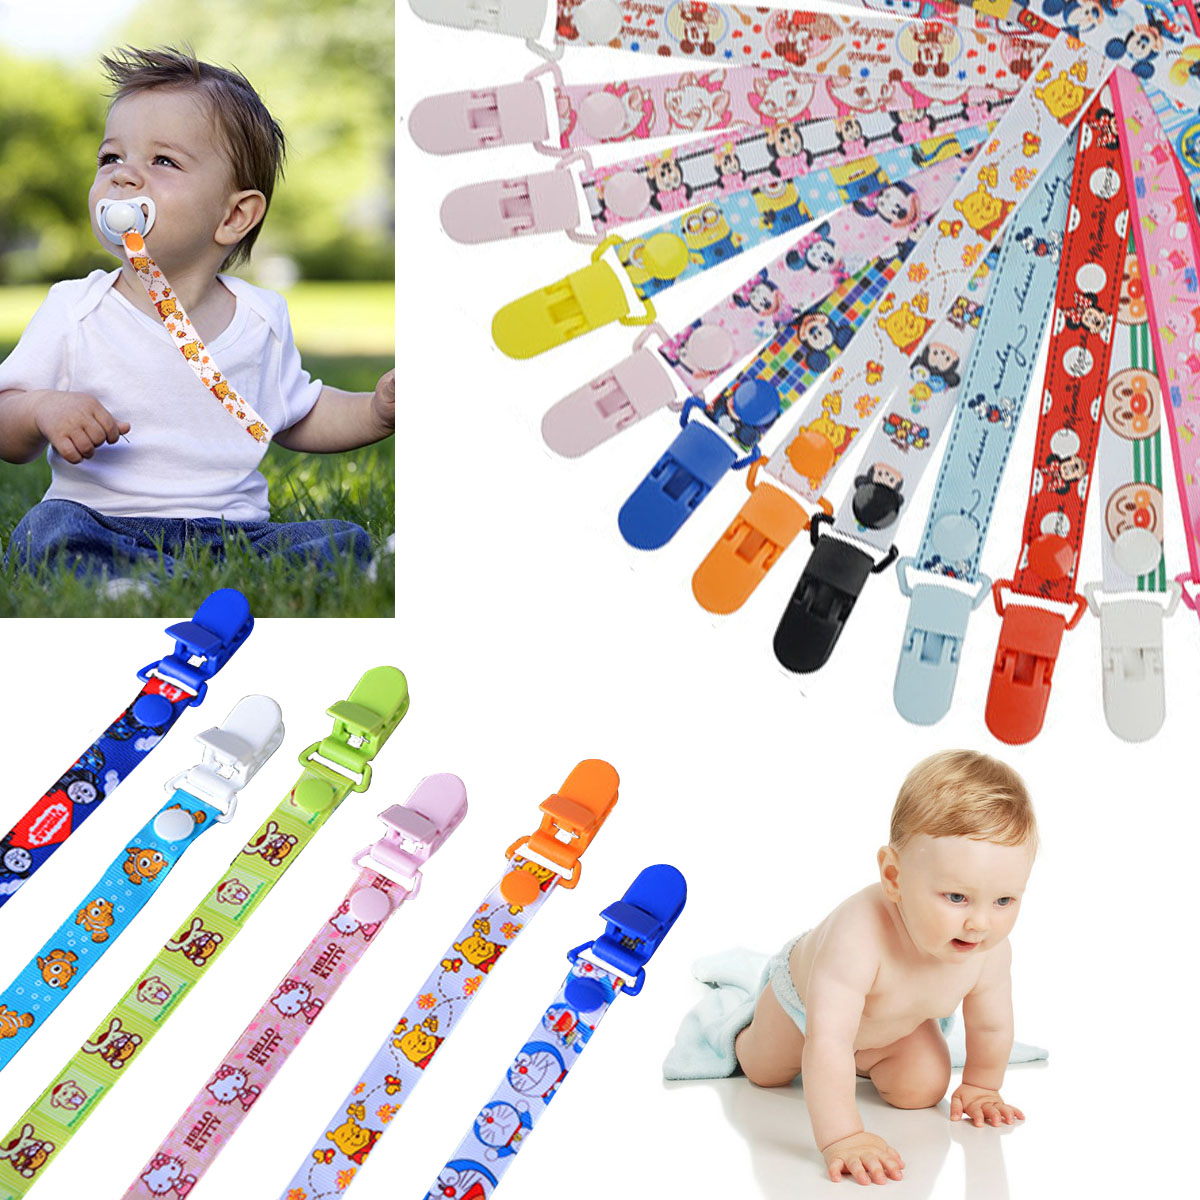 Cartoon Baby Pacifier Clips Pacifier Chain Ribbon Holder Dummy Clip Nipple Holder For Nipples Children Pacifier Clip I0002Cartoon Baby Pacifier Clips Pacifier Chain Ribbon Holder Dummy Clip Nipple Holder For Nipples Children Pacifier Clip I0002